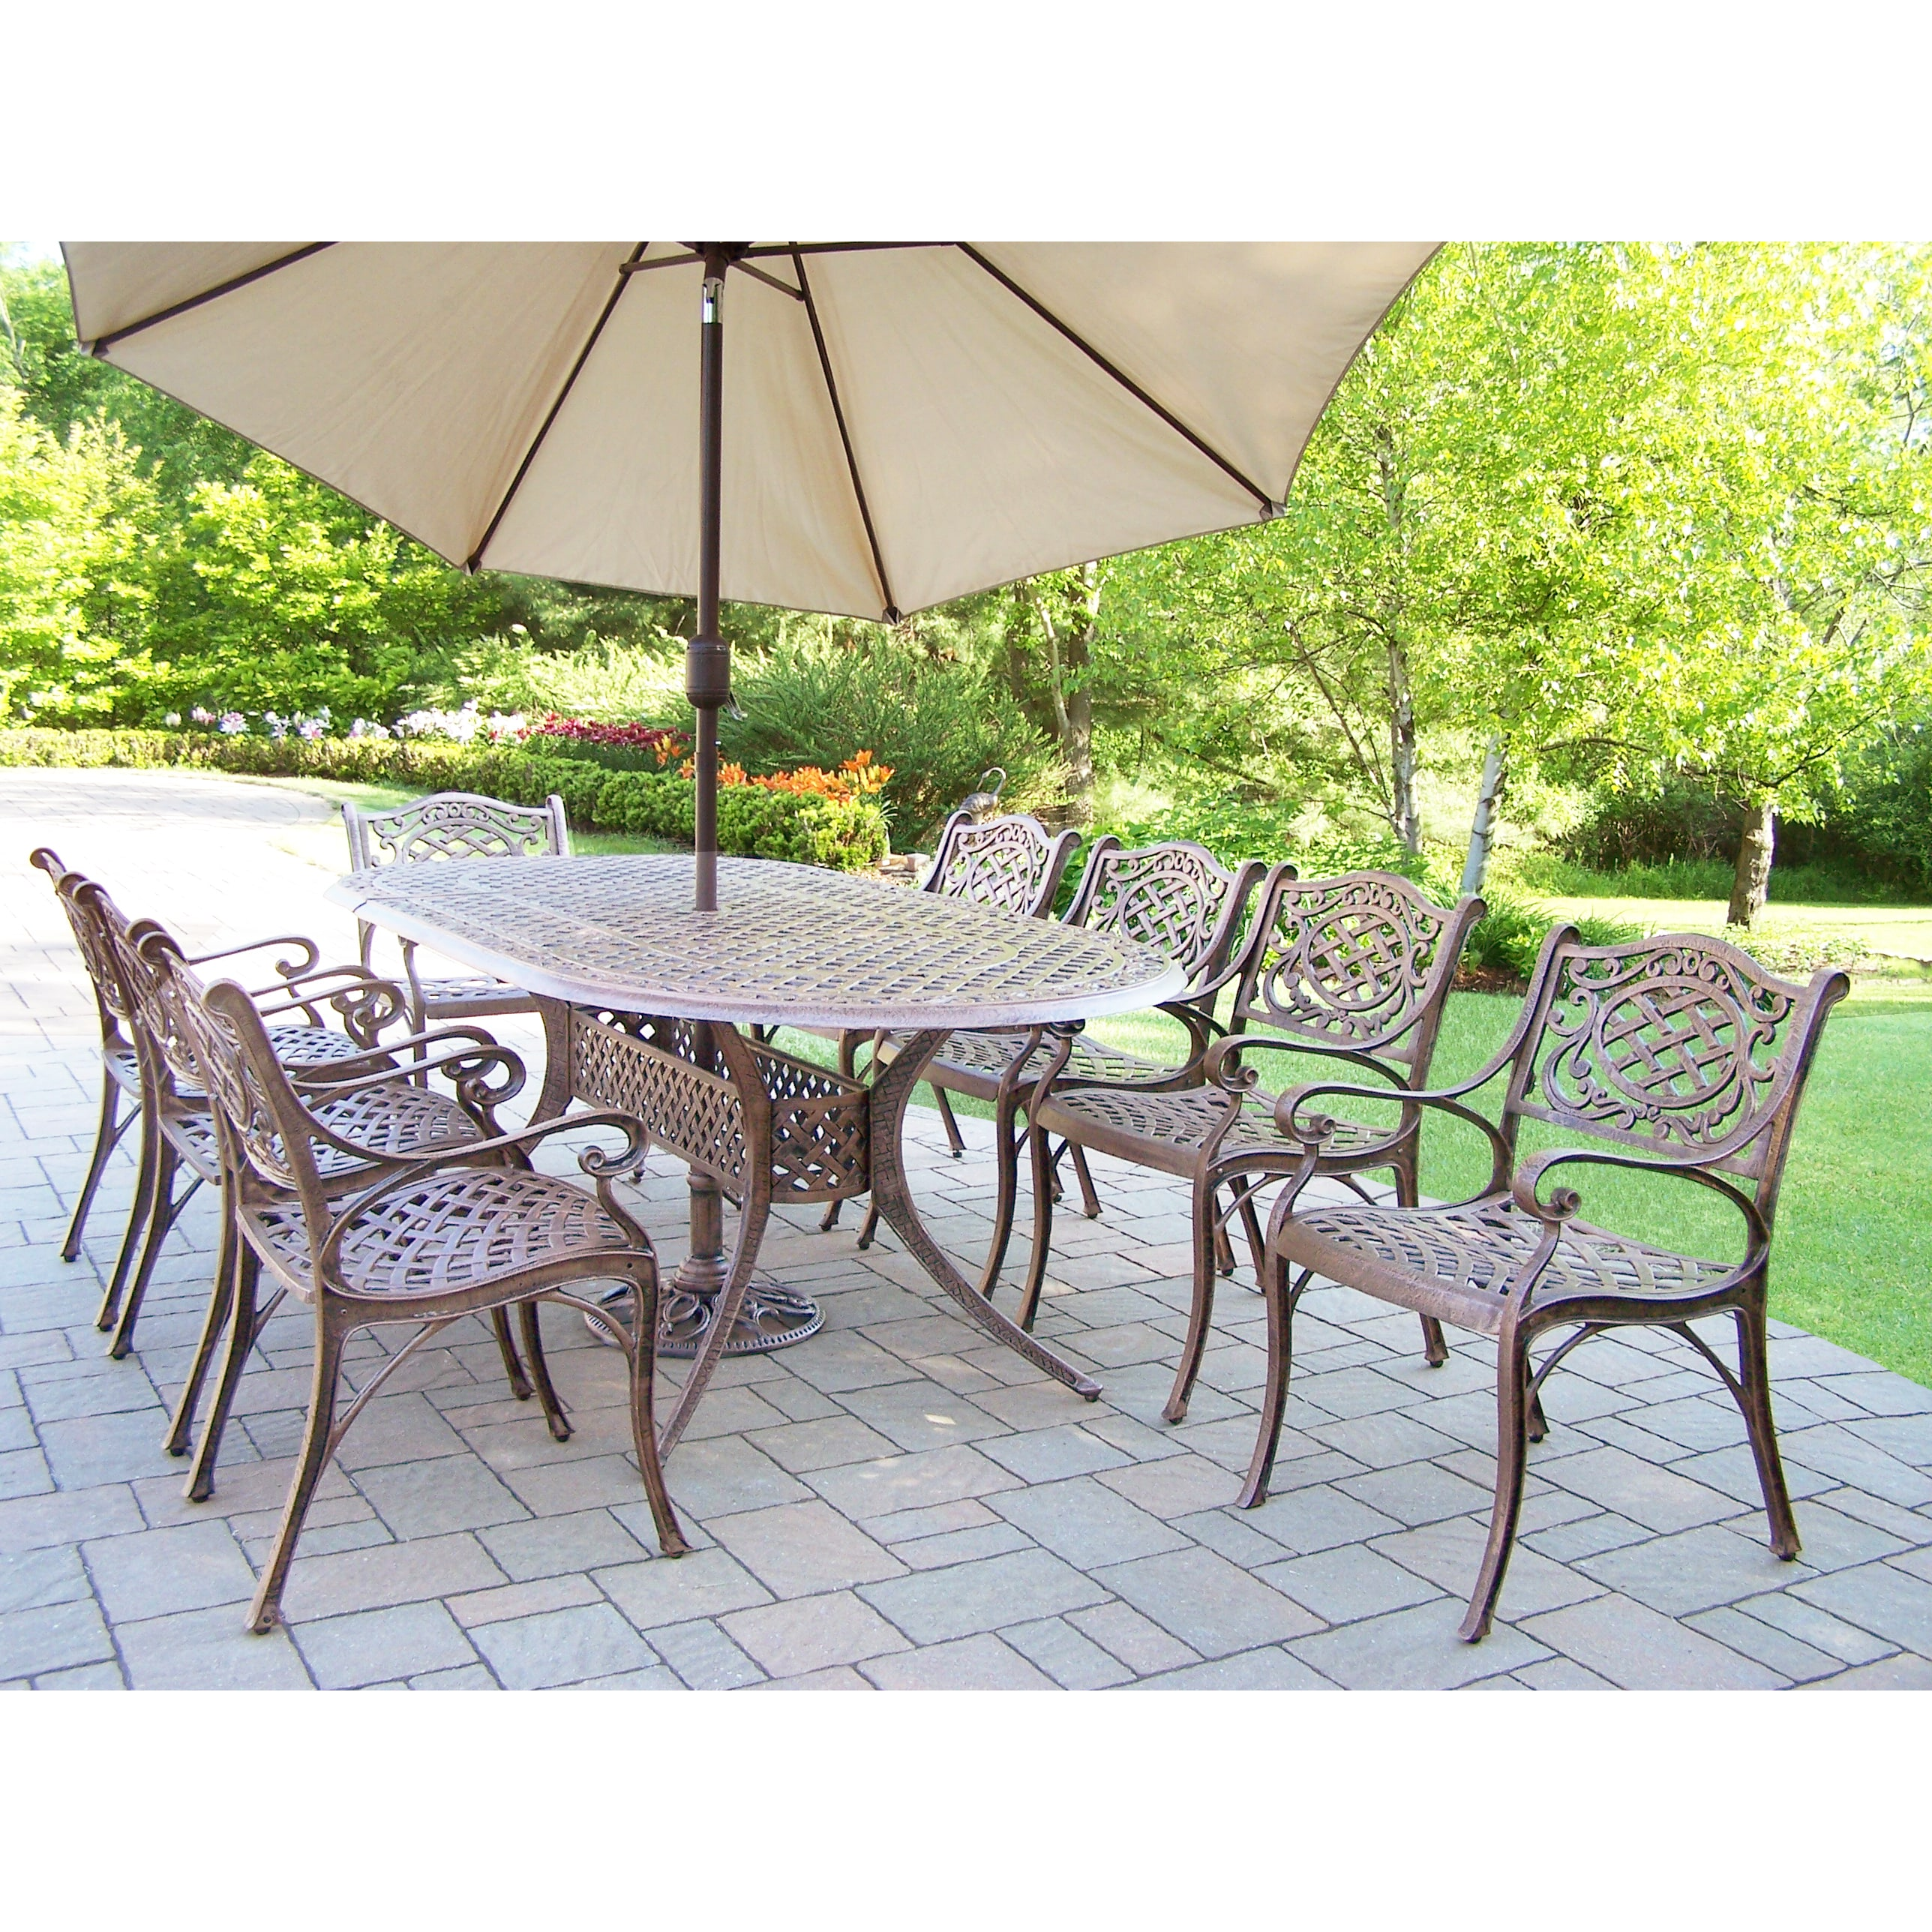 Fabulous Outdoor Dining Set With Oval Table 8 Chairs Umbrella And Stand Pdpeps Interior Chair Design Pdpepsorg